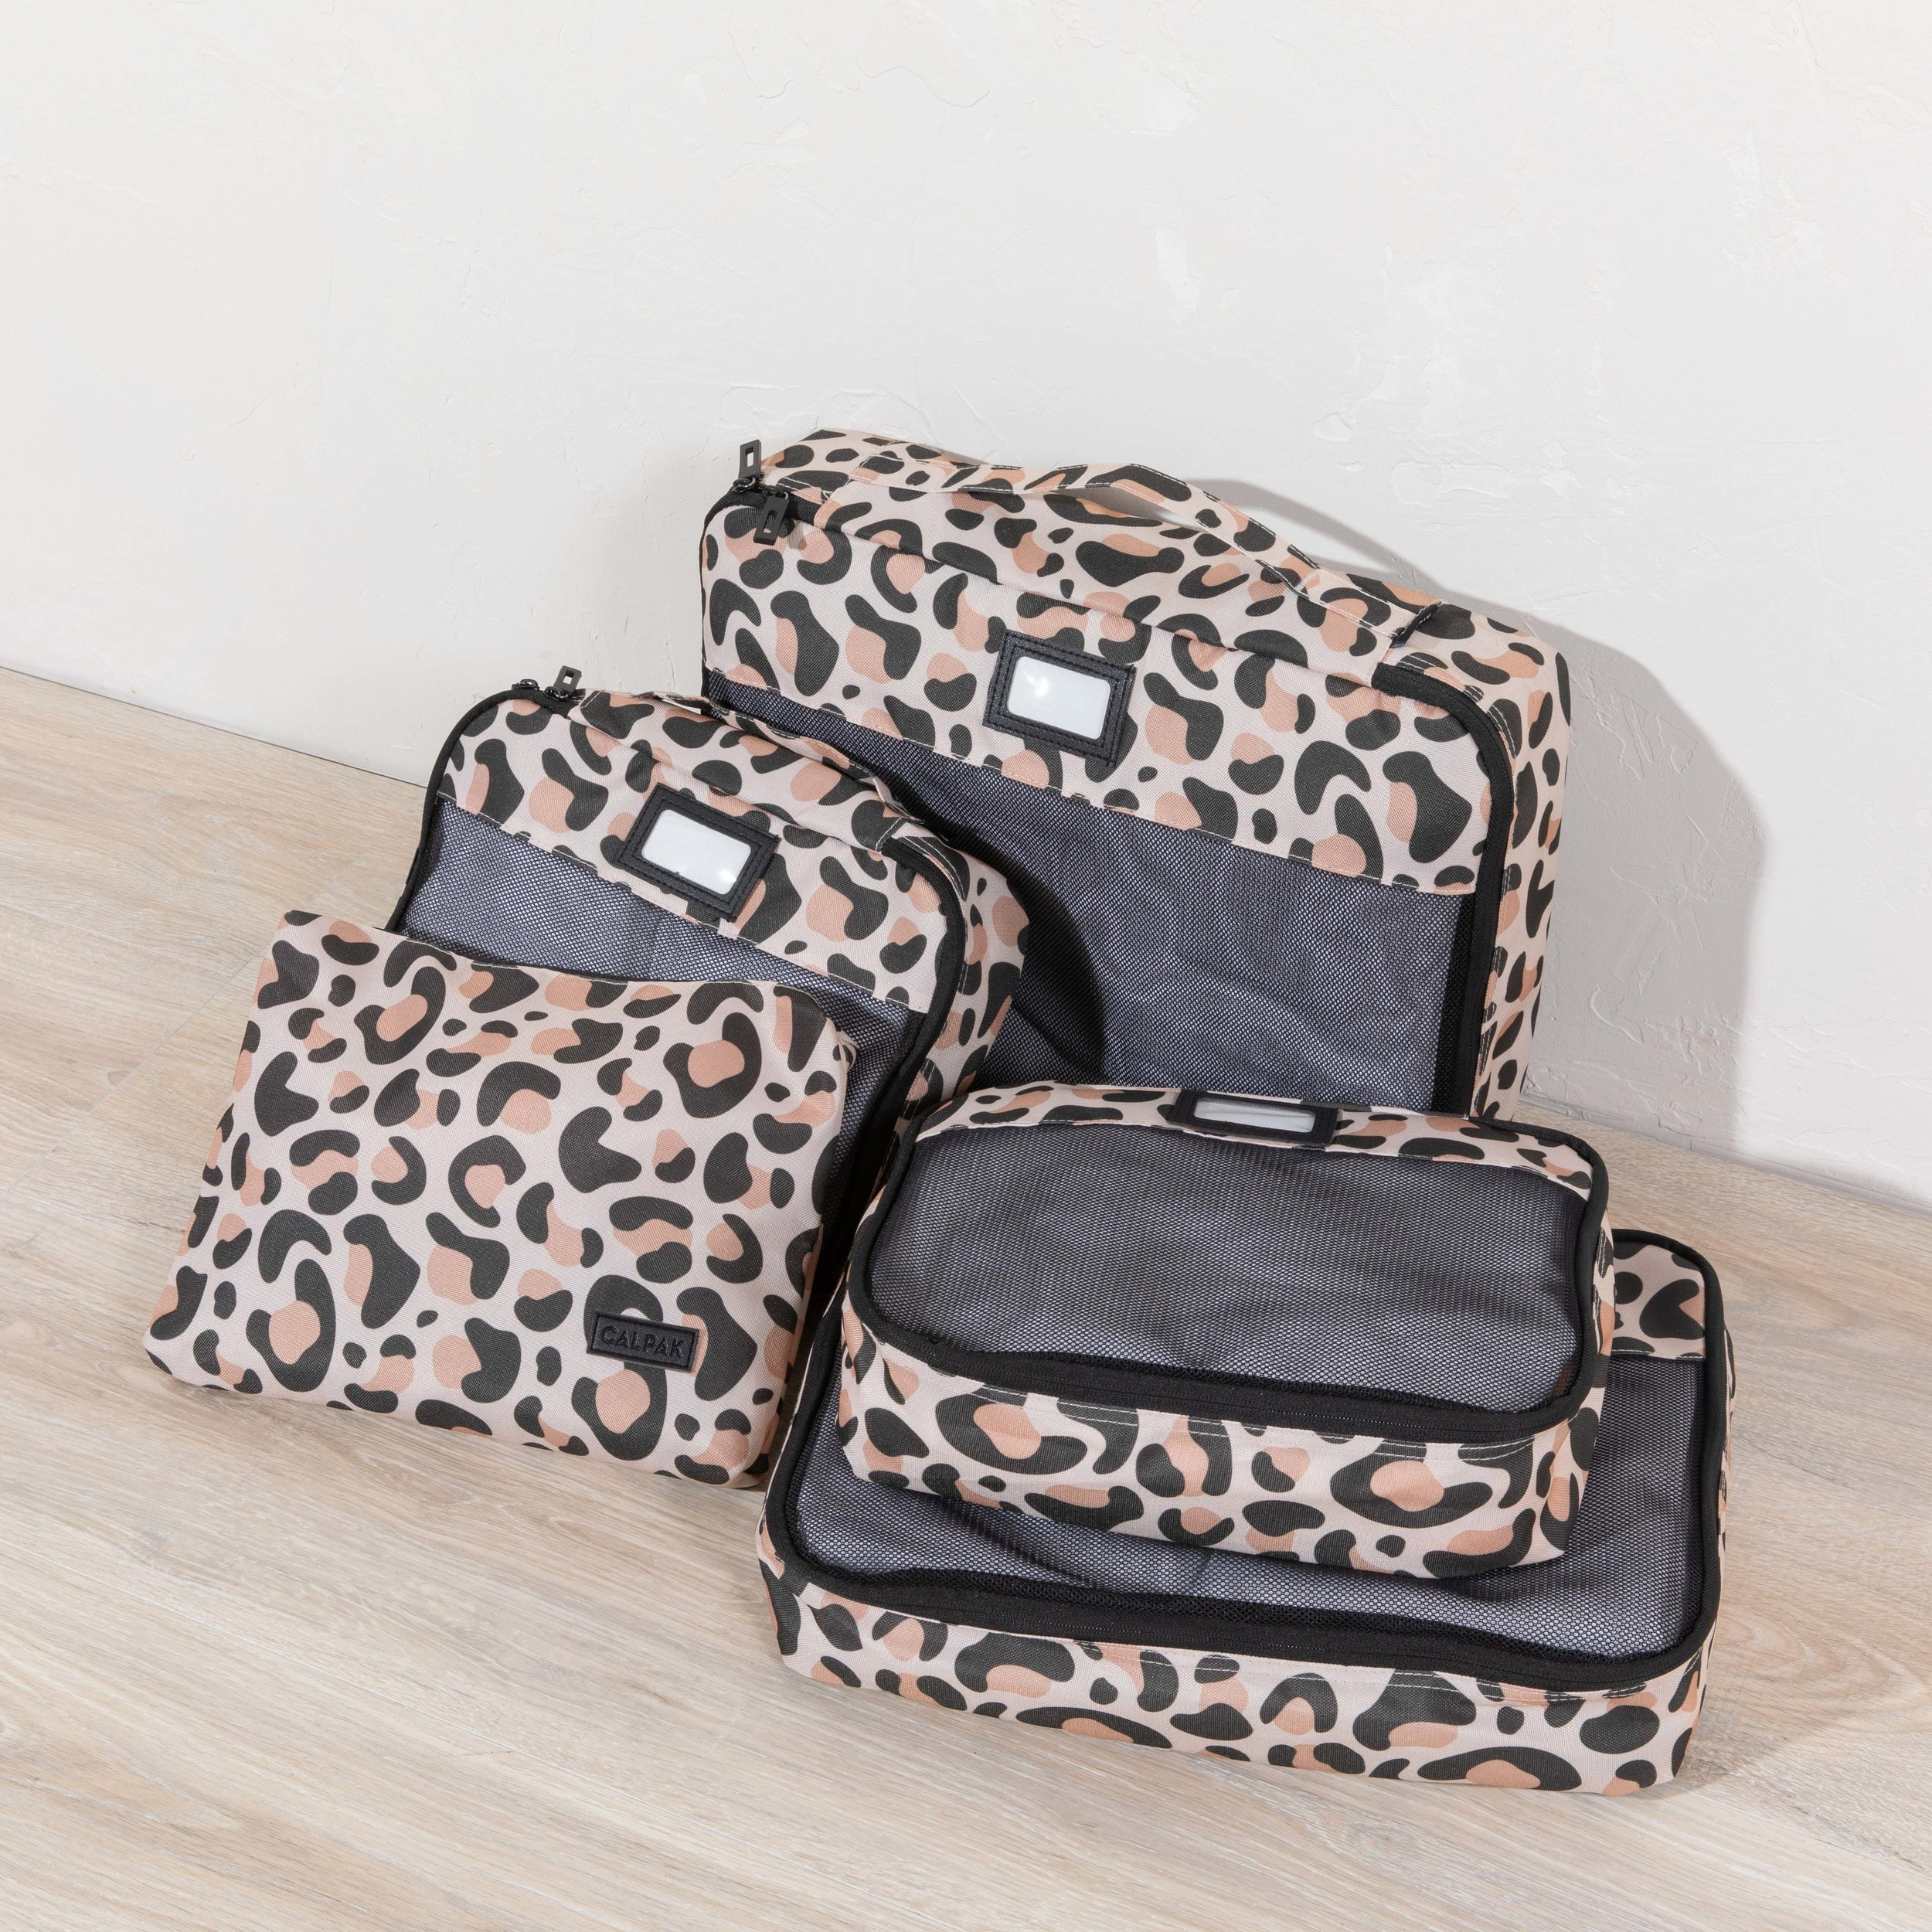 Packing Cubes - Leopard -